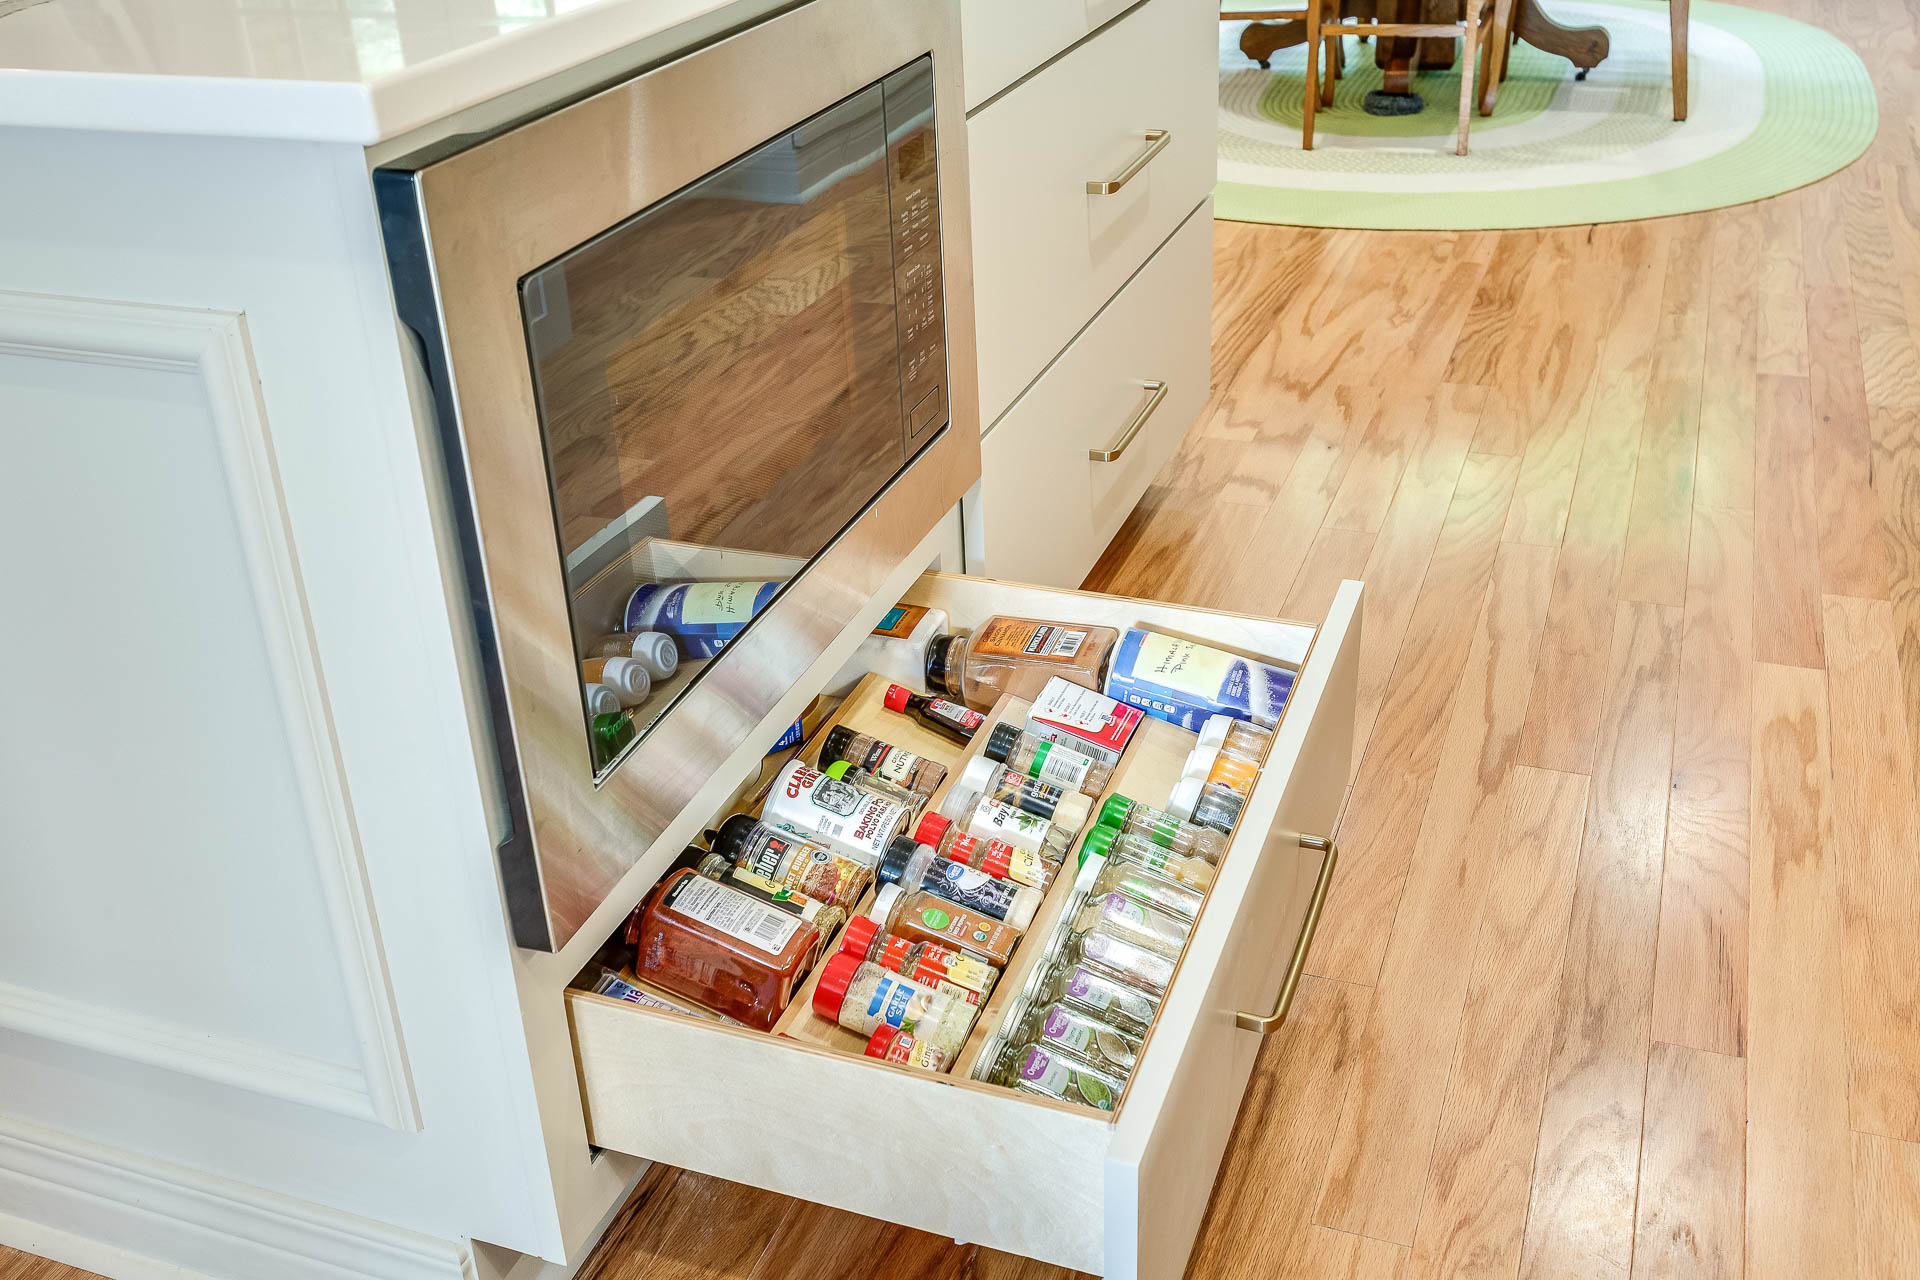 A spice drawer was placed below the built-in microwave in the kitchen island.